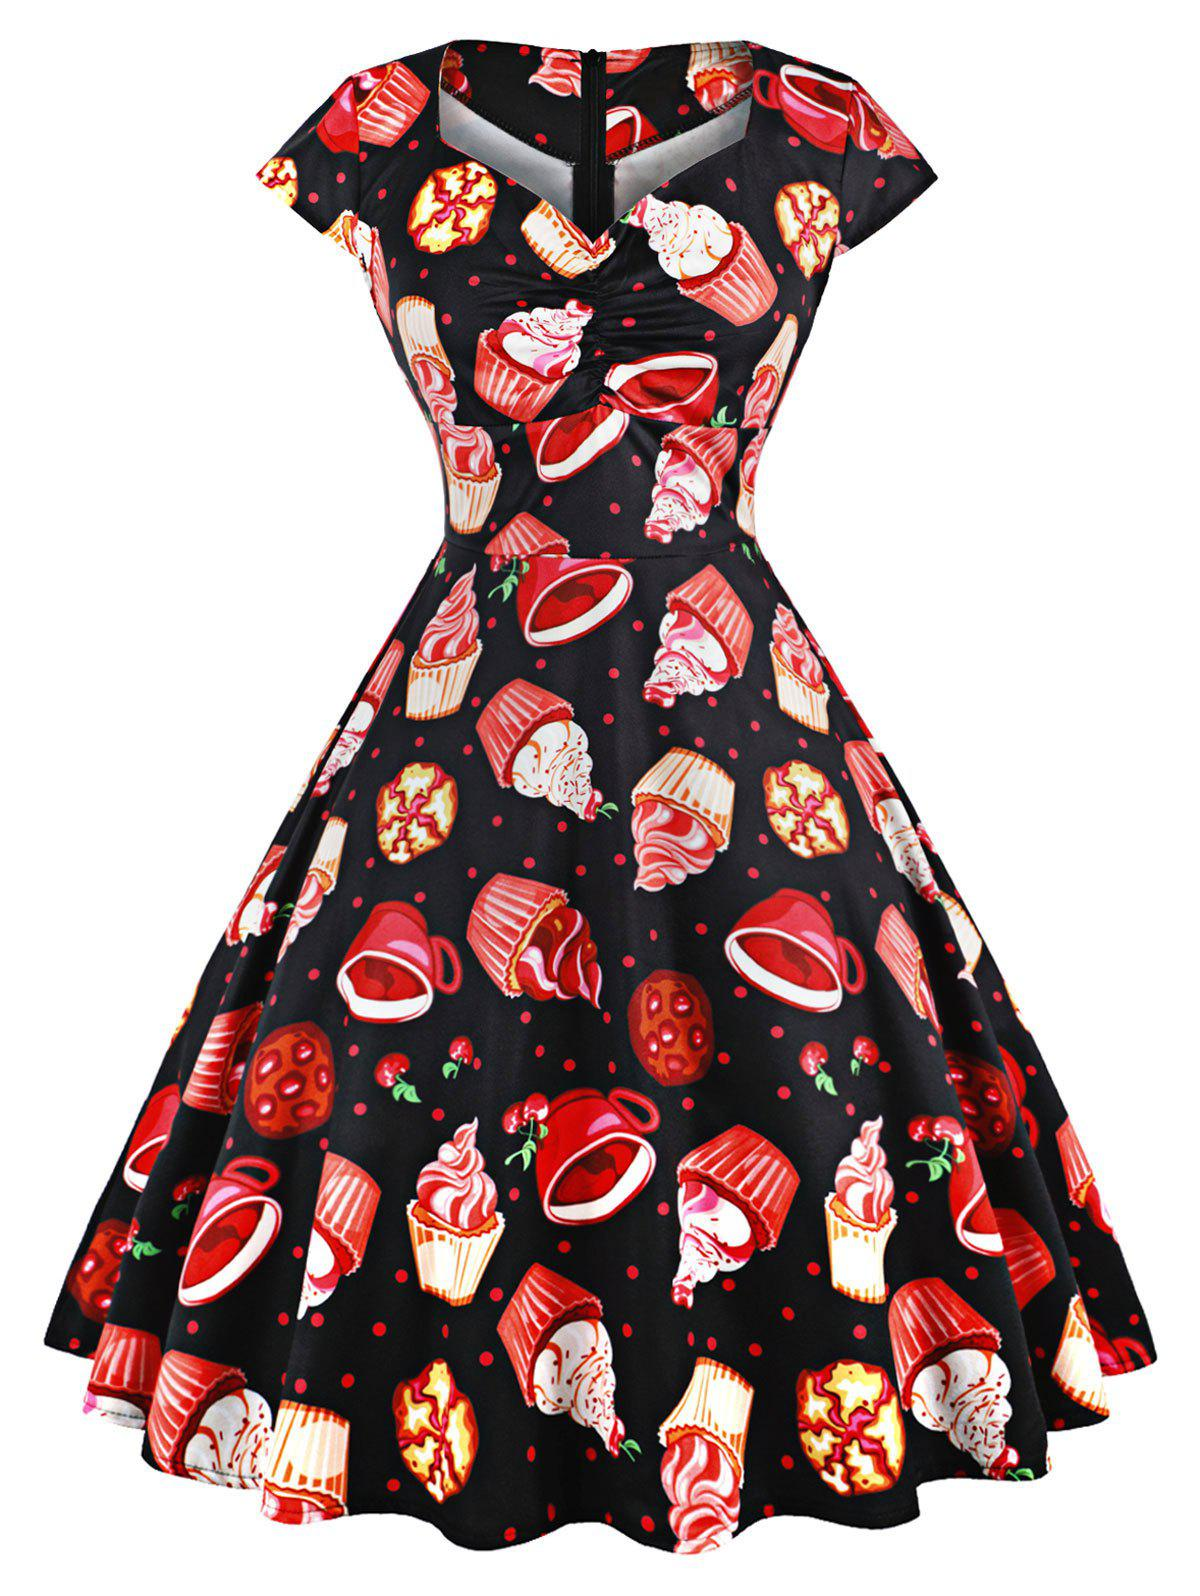 Chic Cookies A Line Party Vintage Dress